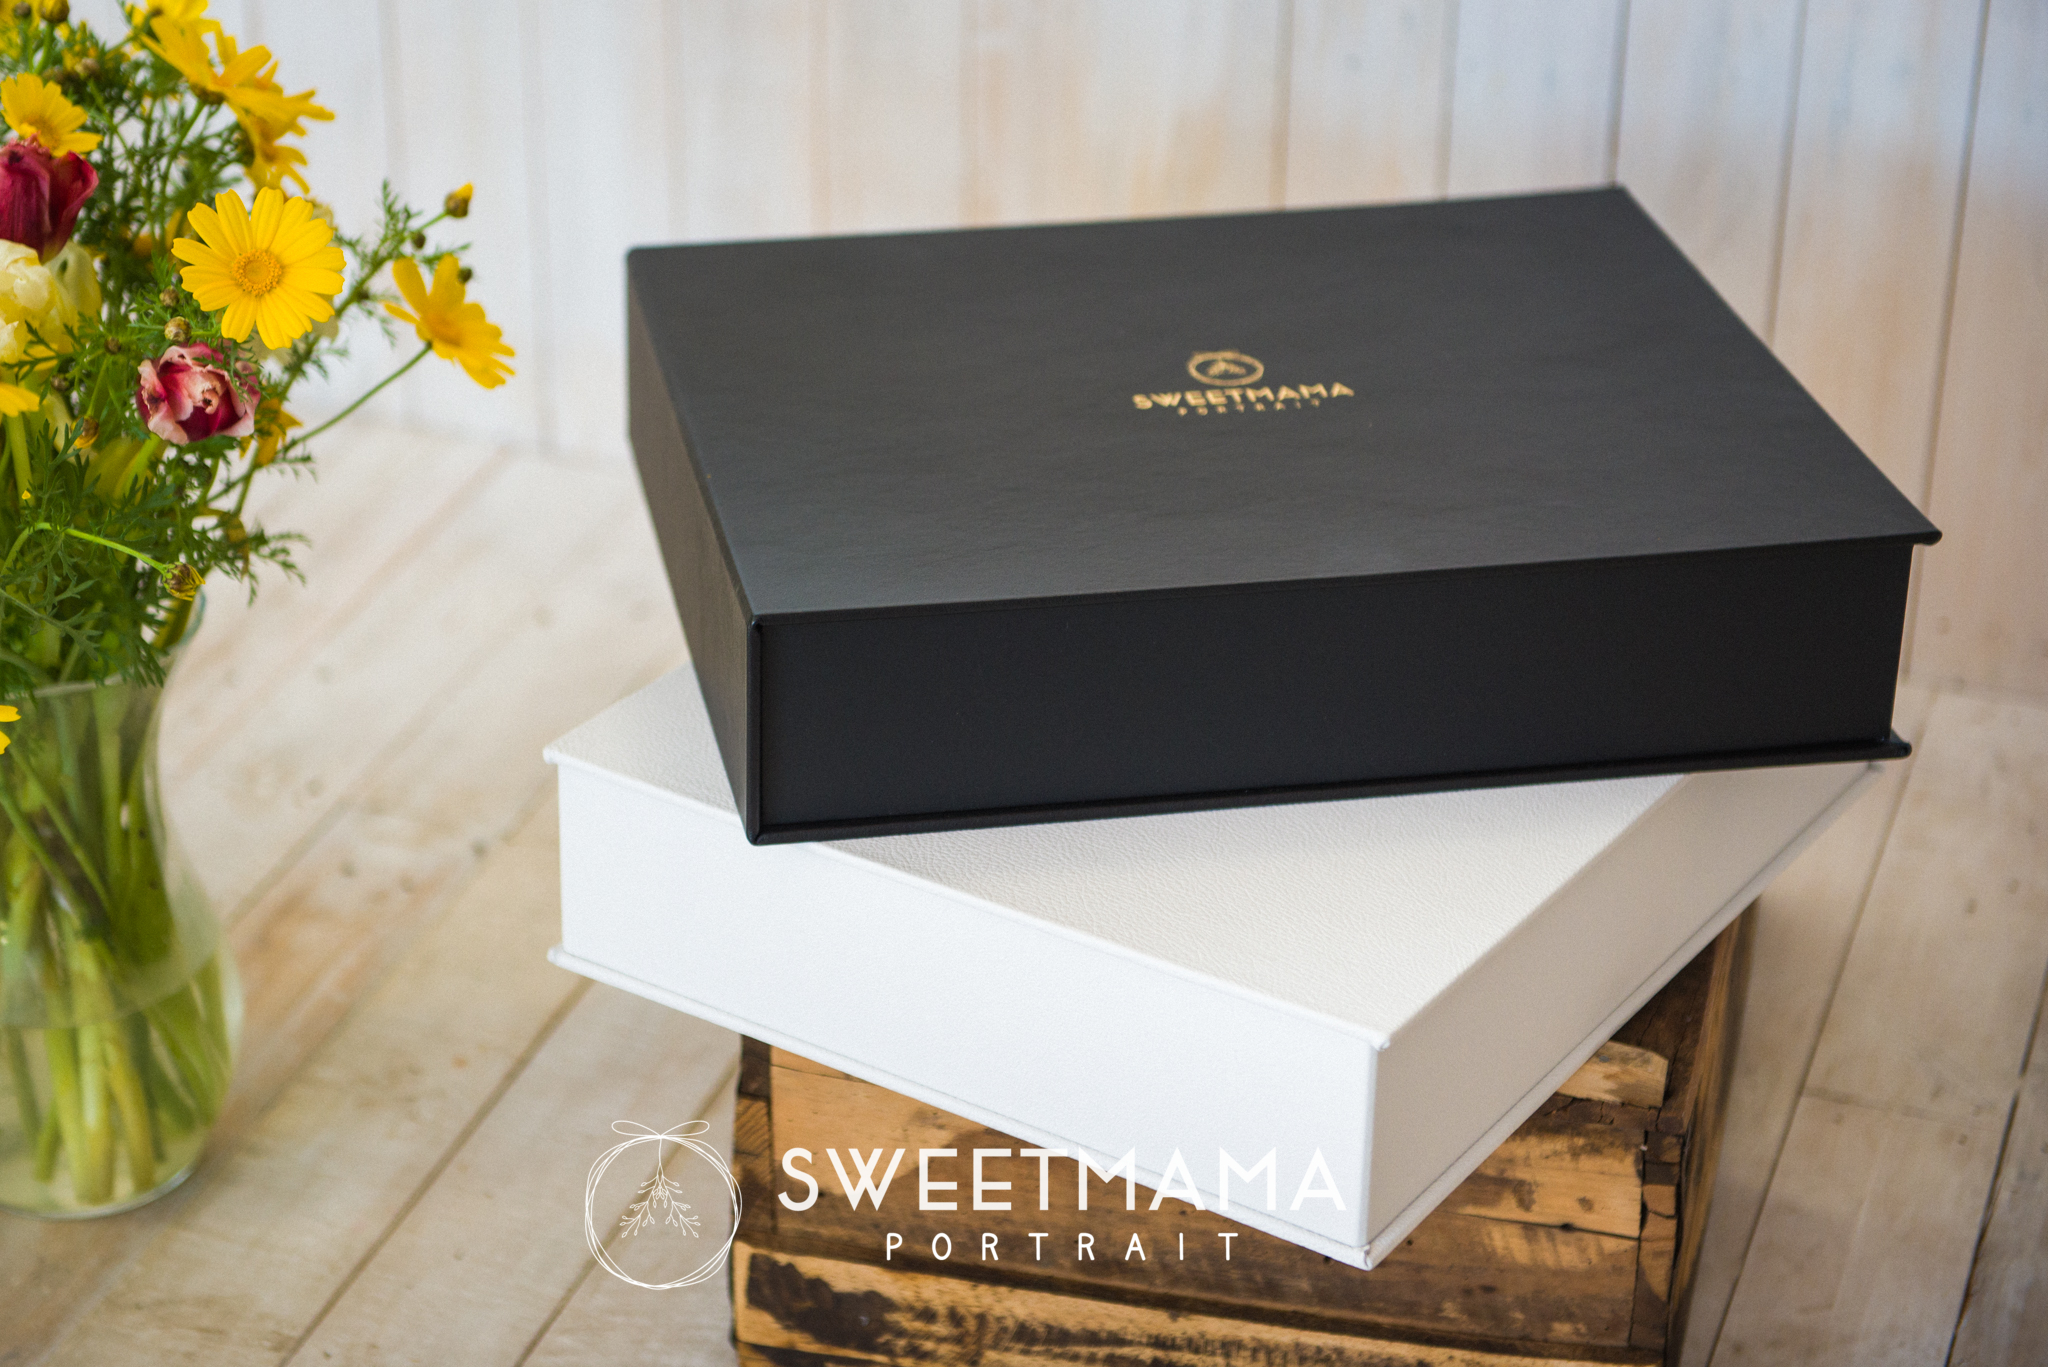 Folio Boxes, signature portrait products - Sweetmama Photography, Cyprus-based photography boutique specialising in couture-inspired Christening, Family, and Newborn portrait photography